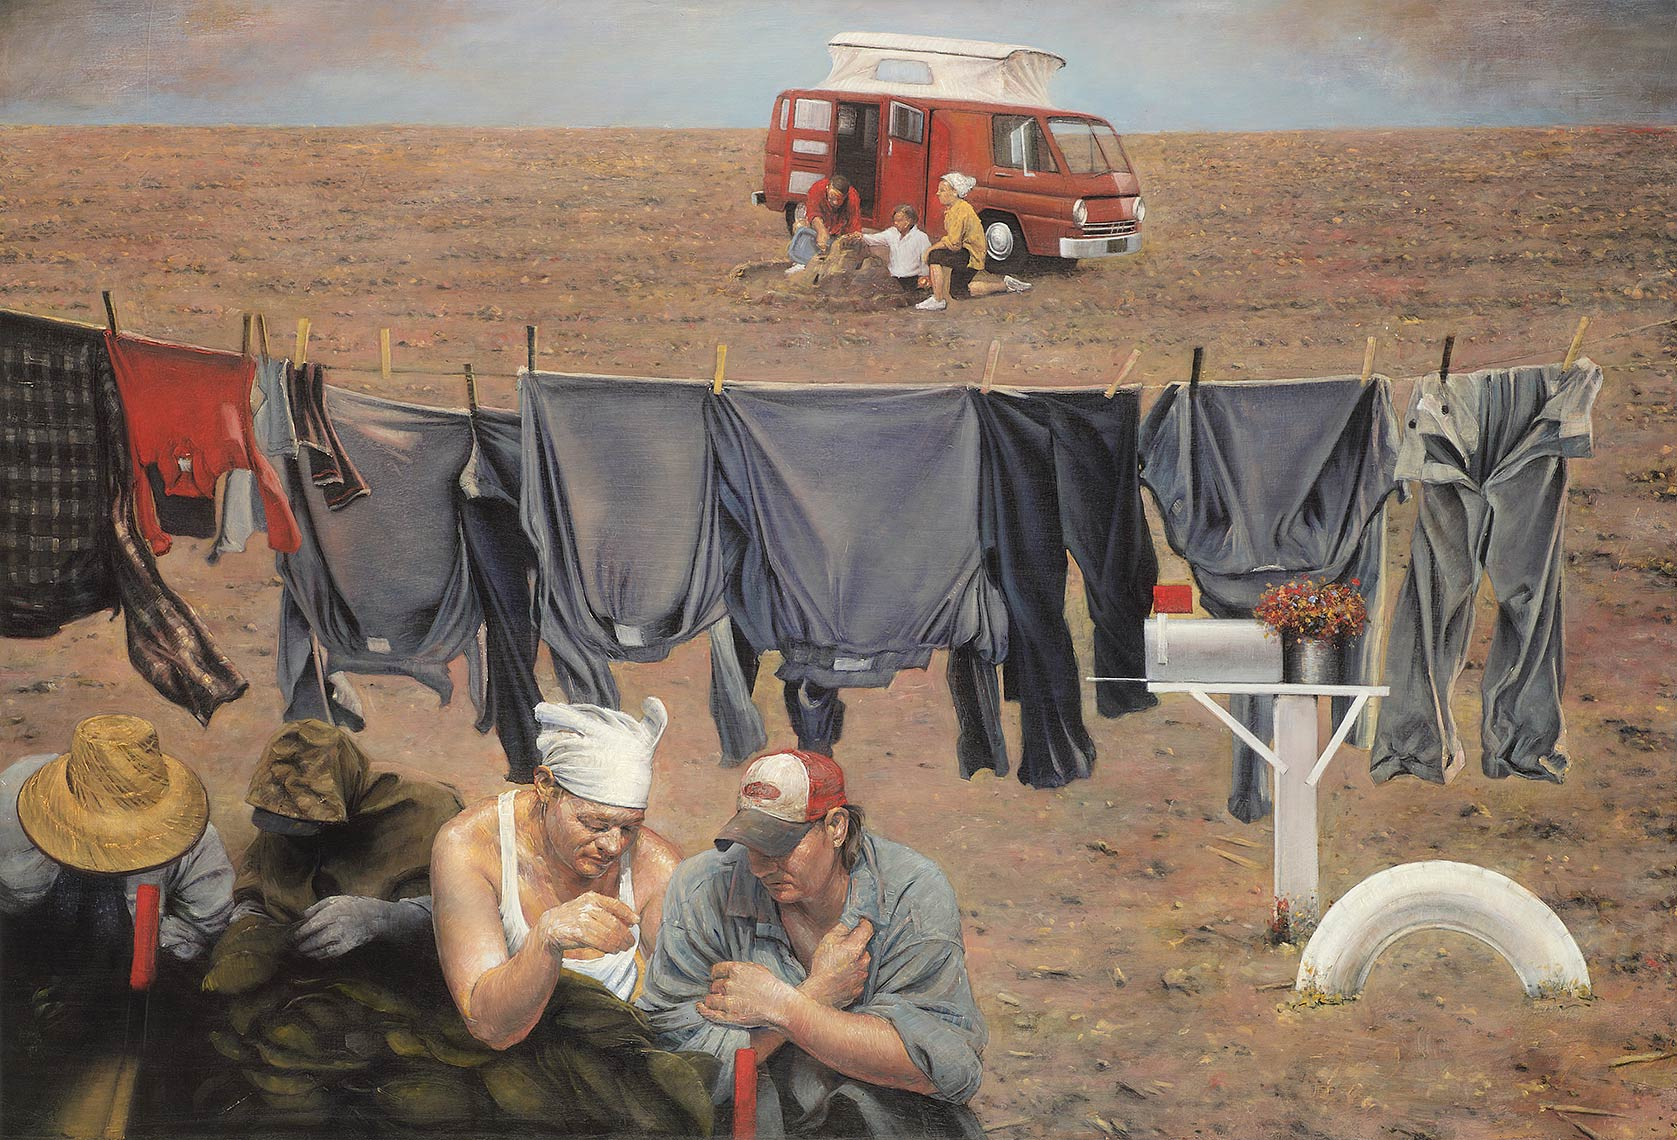 The-Best-of-Life-May-Nineteenth-The-Migrants_2013_oil-on-canvas_119x175_46.5x68.5_Available